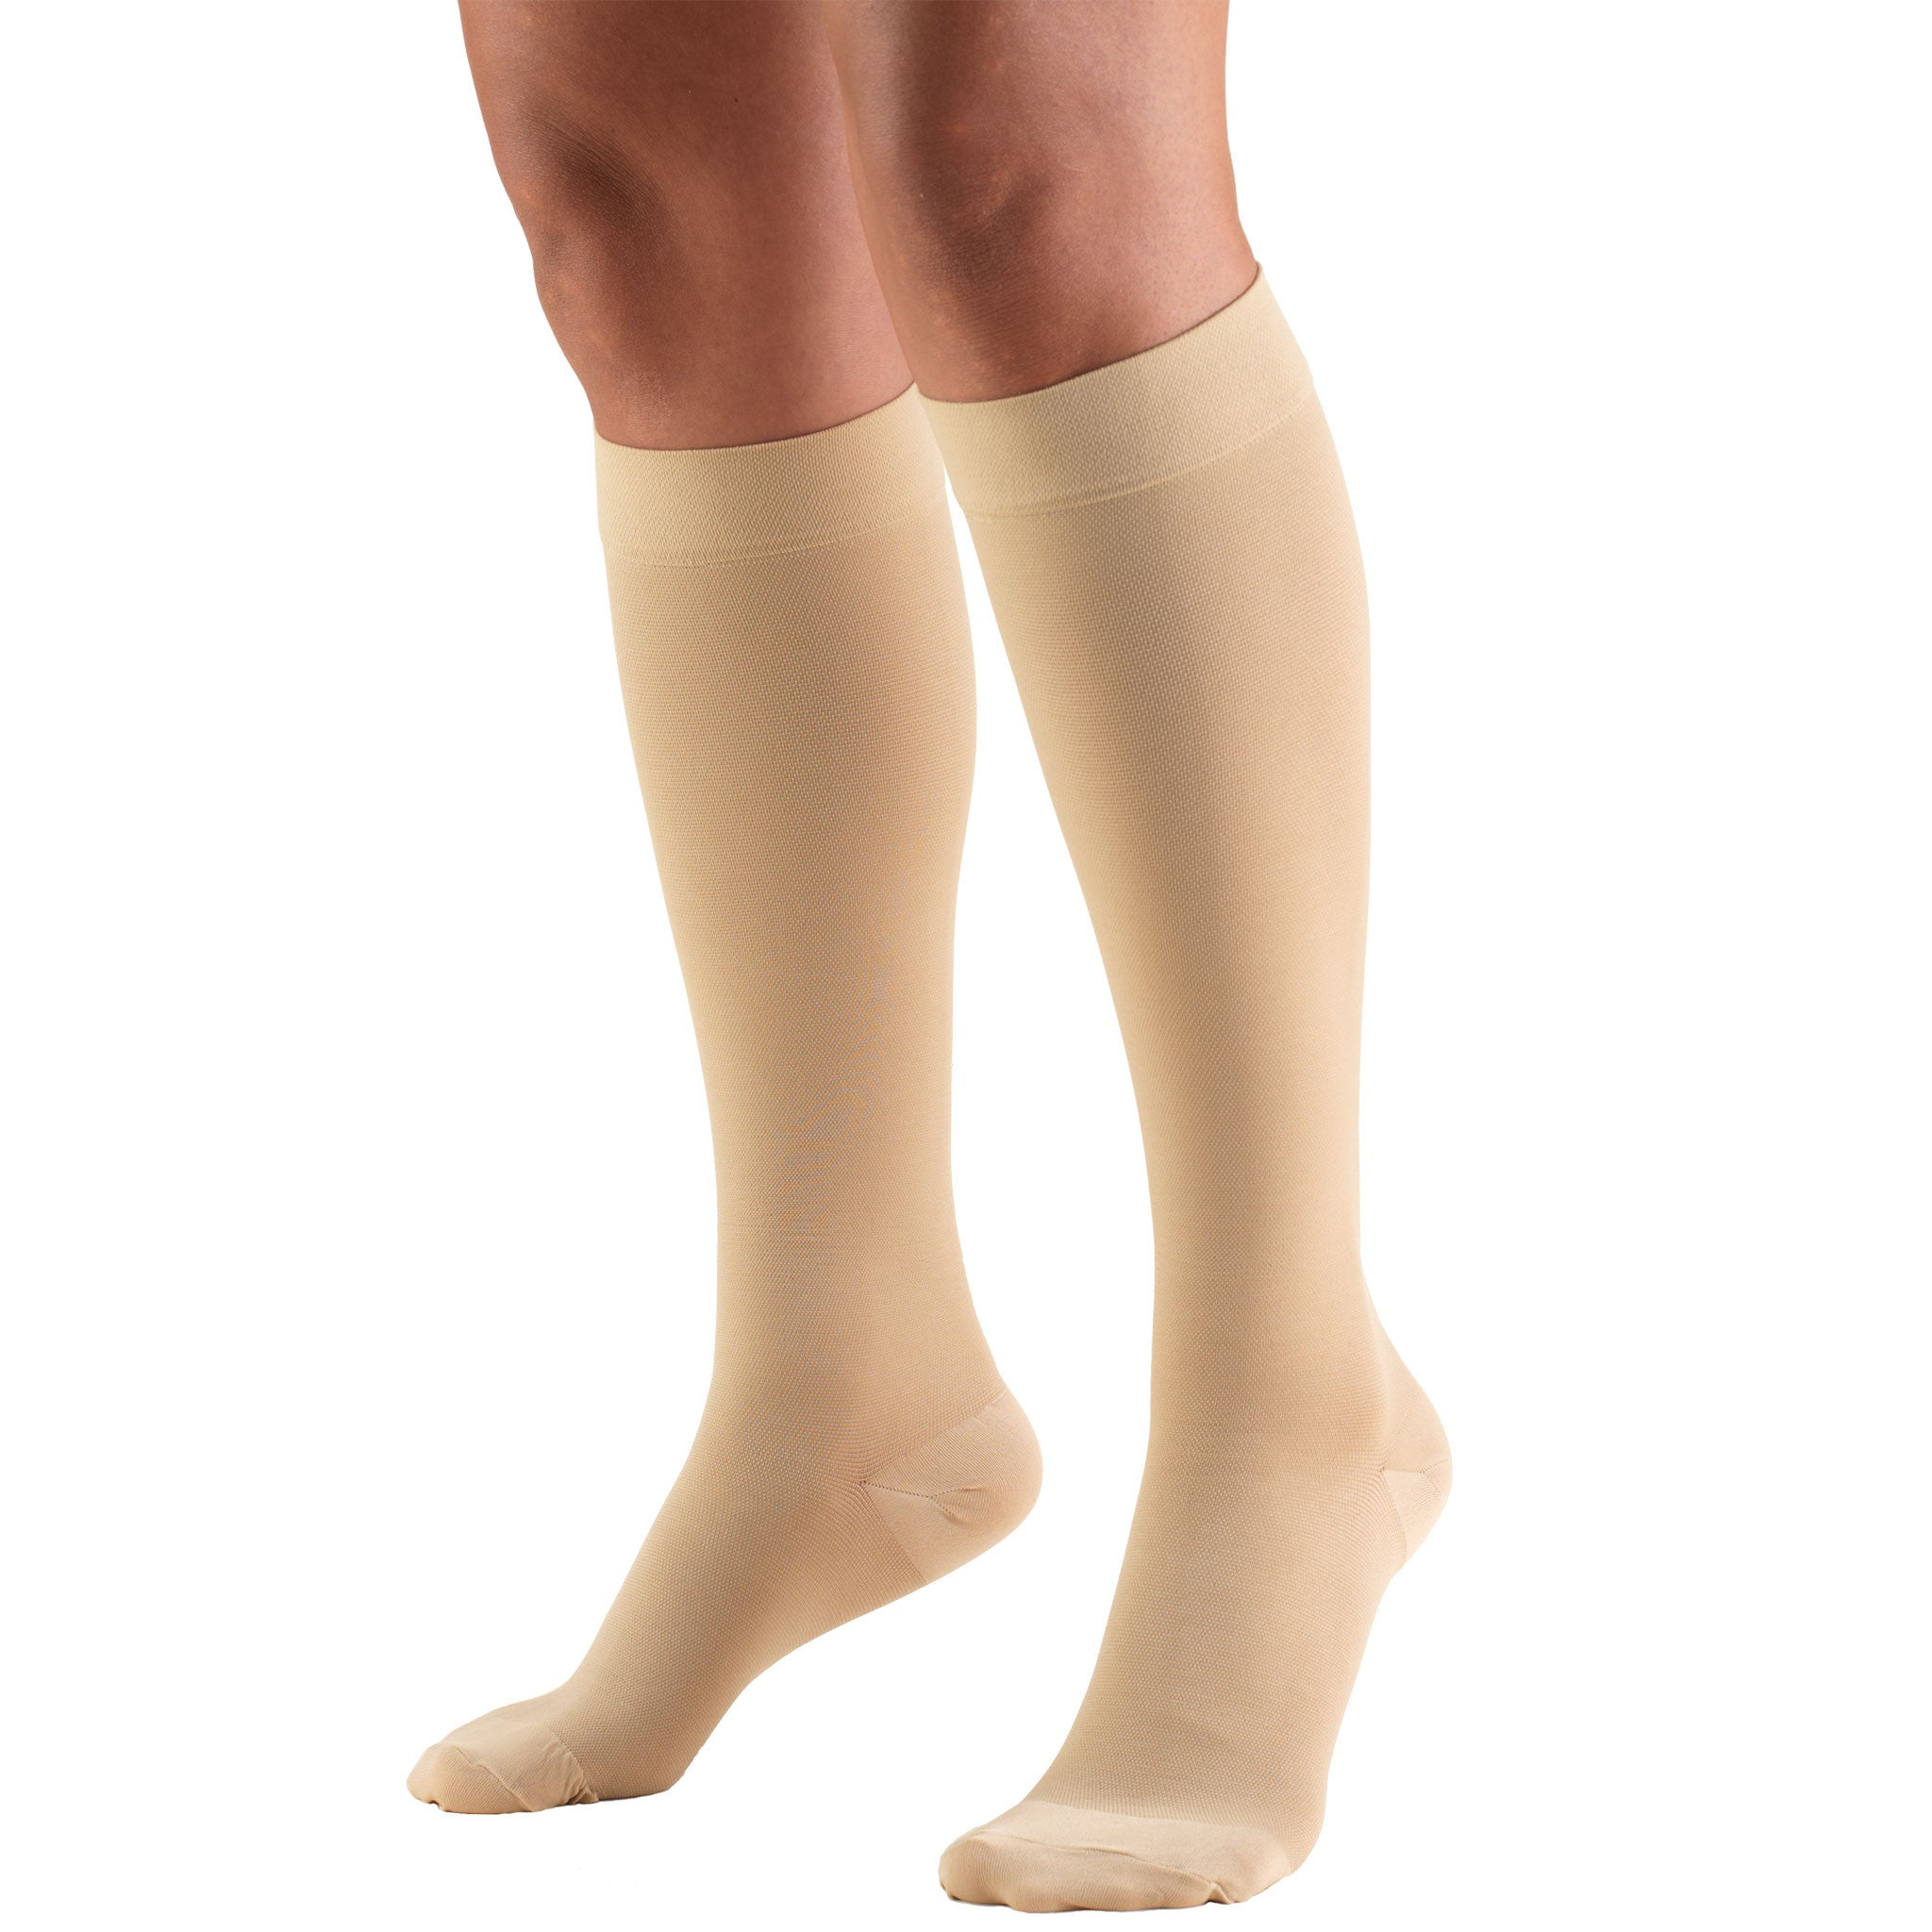 8865 Below Knee Closed Toe Beige Stockings